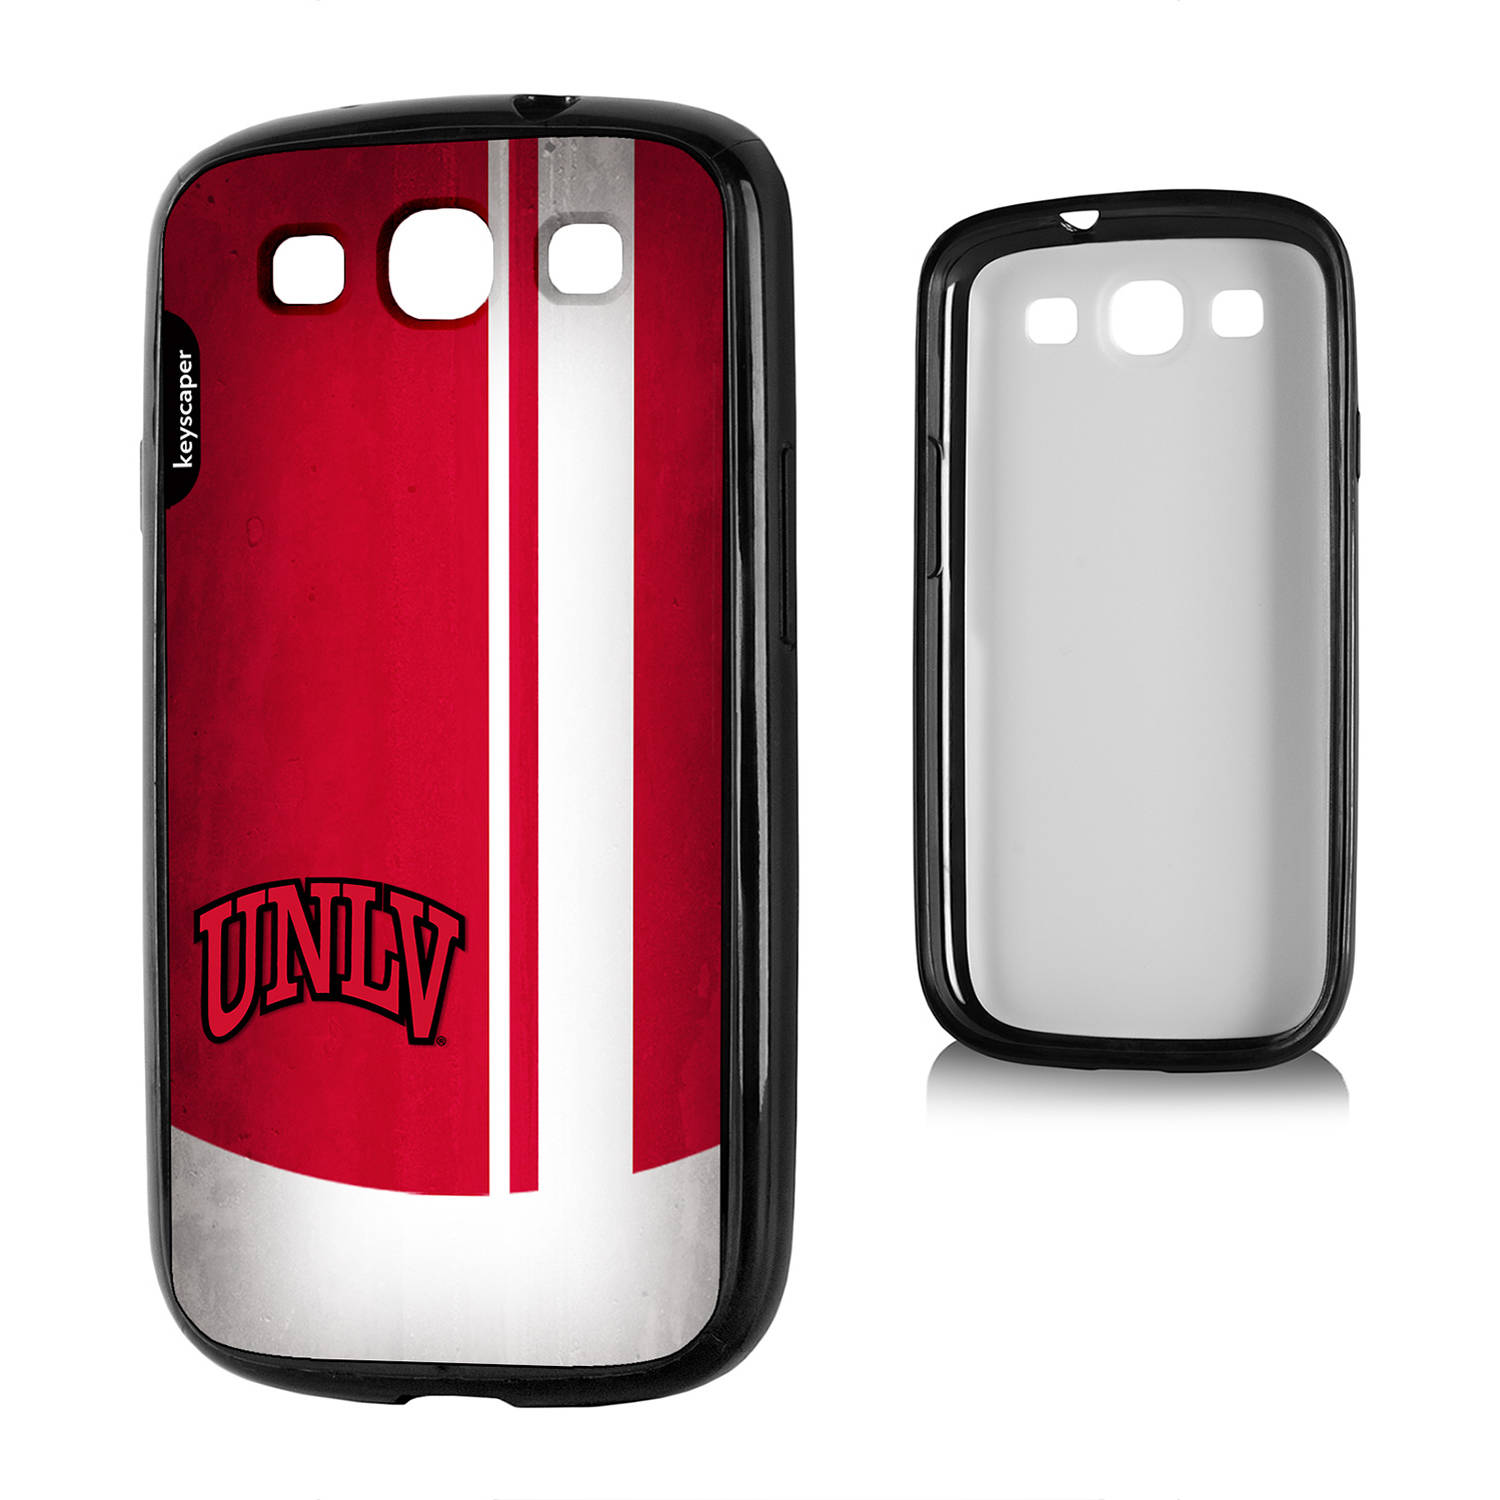 University of Nevada - Las Vegas Galaxy S3 Bumper Case